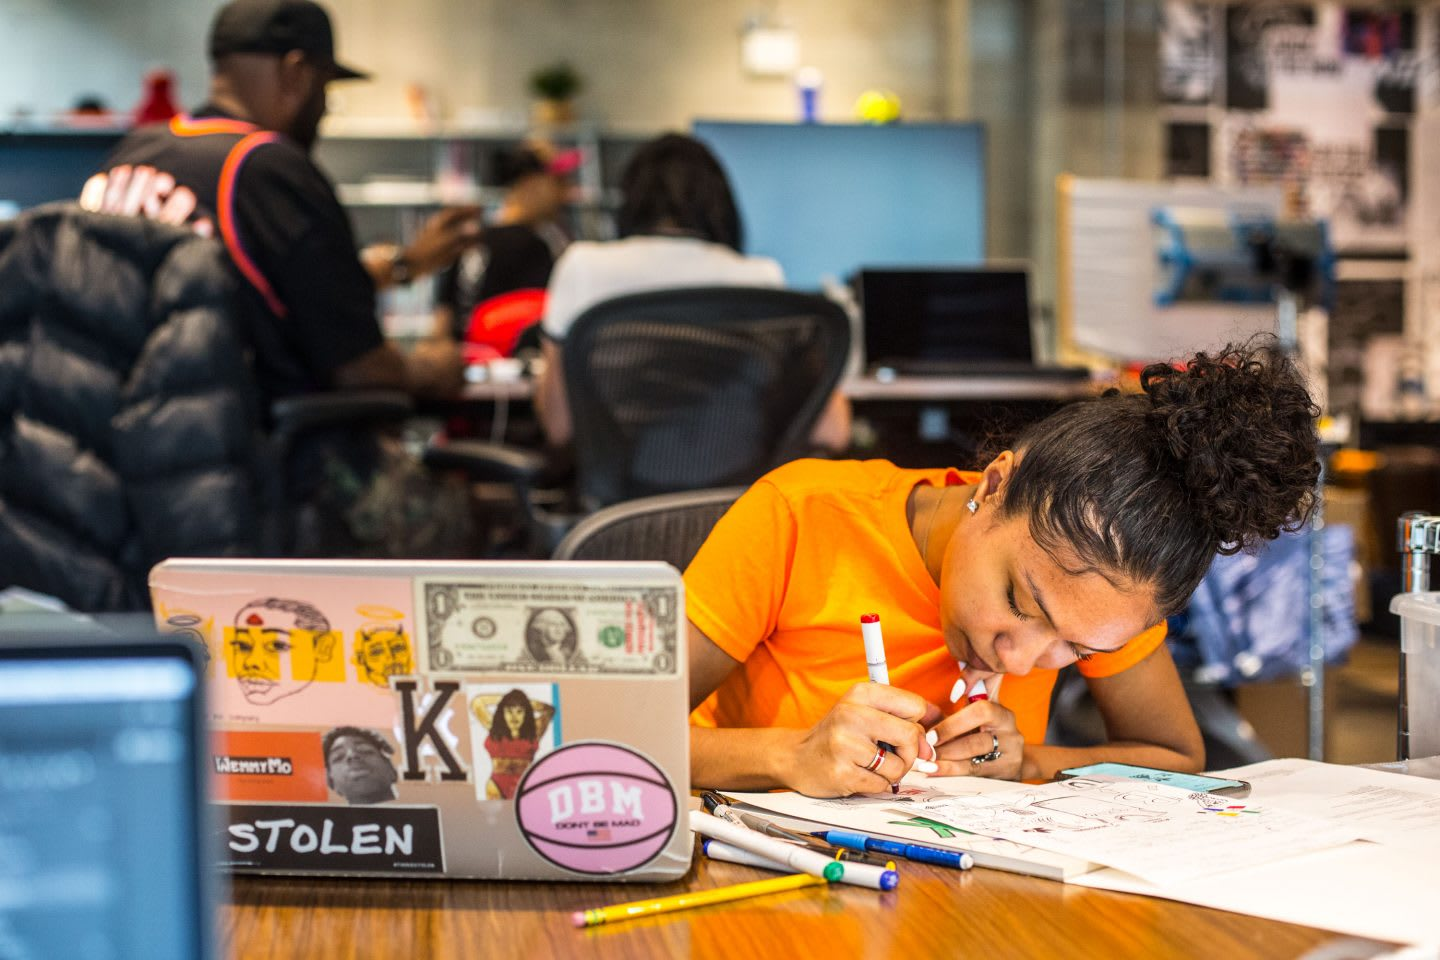 Girl wearing orange t-shirt concentrating while sketching, adidas, Brooklyn Creator Farm, Kim Aponi, designer, entrepreneur